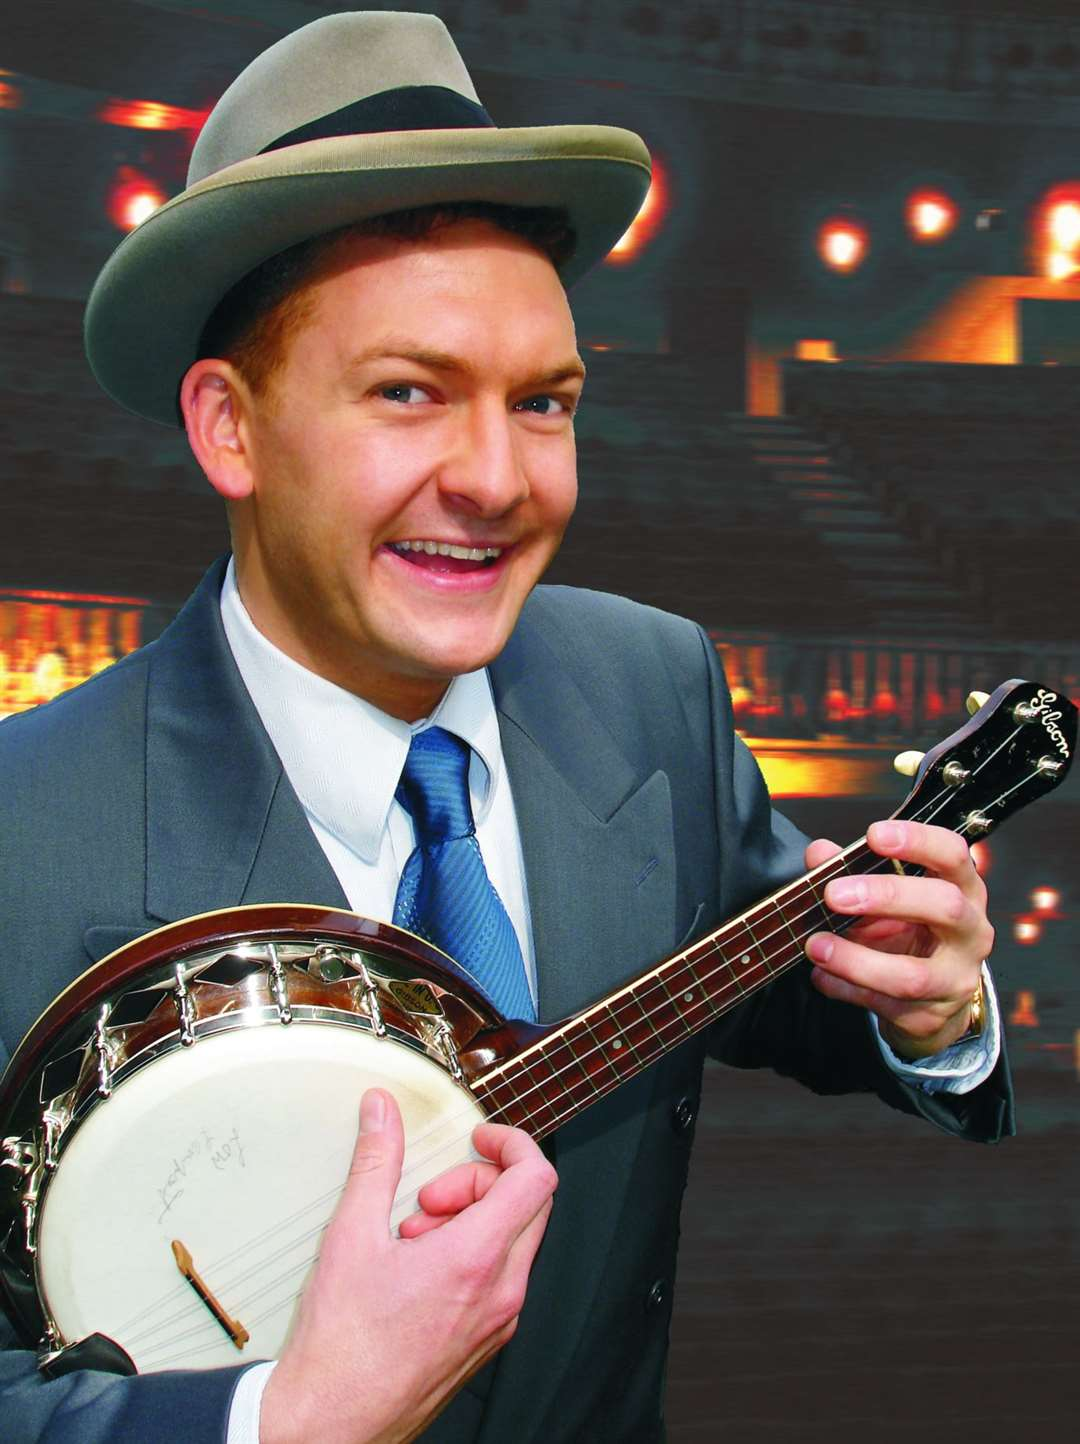 Andy Eastwood as George Formby